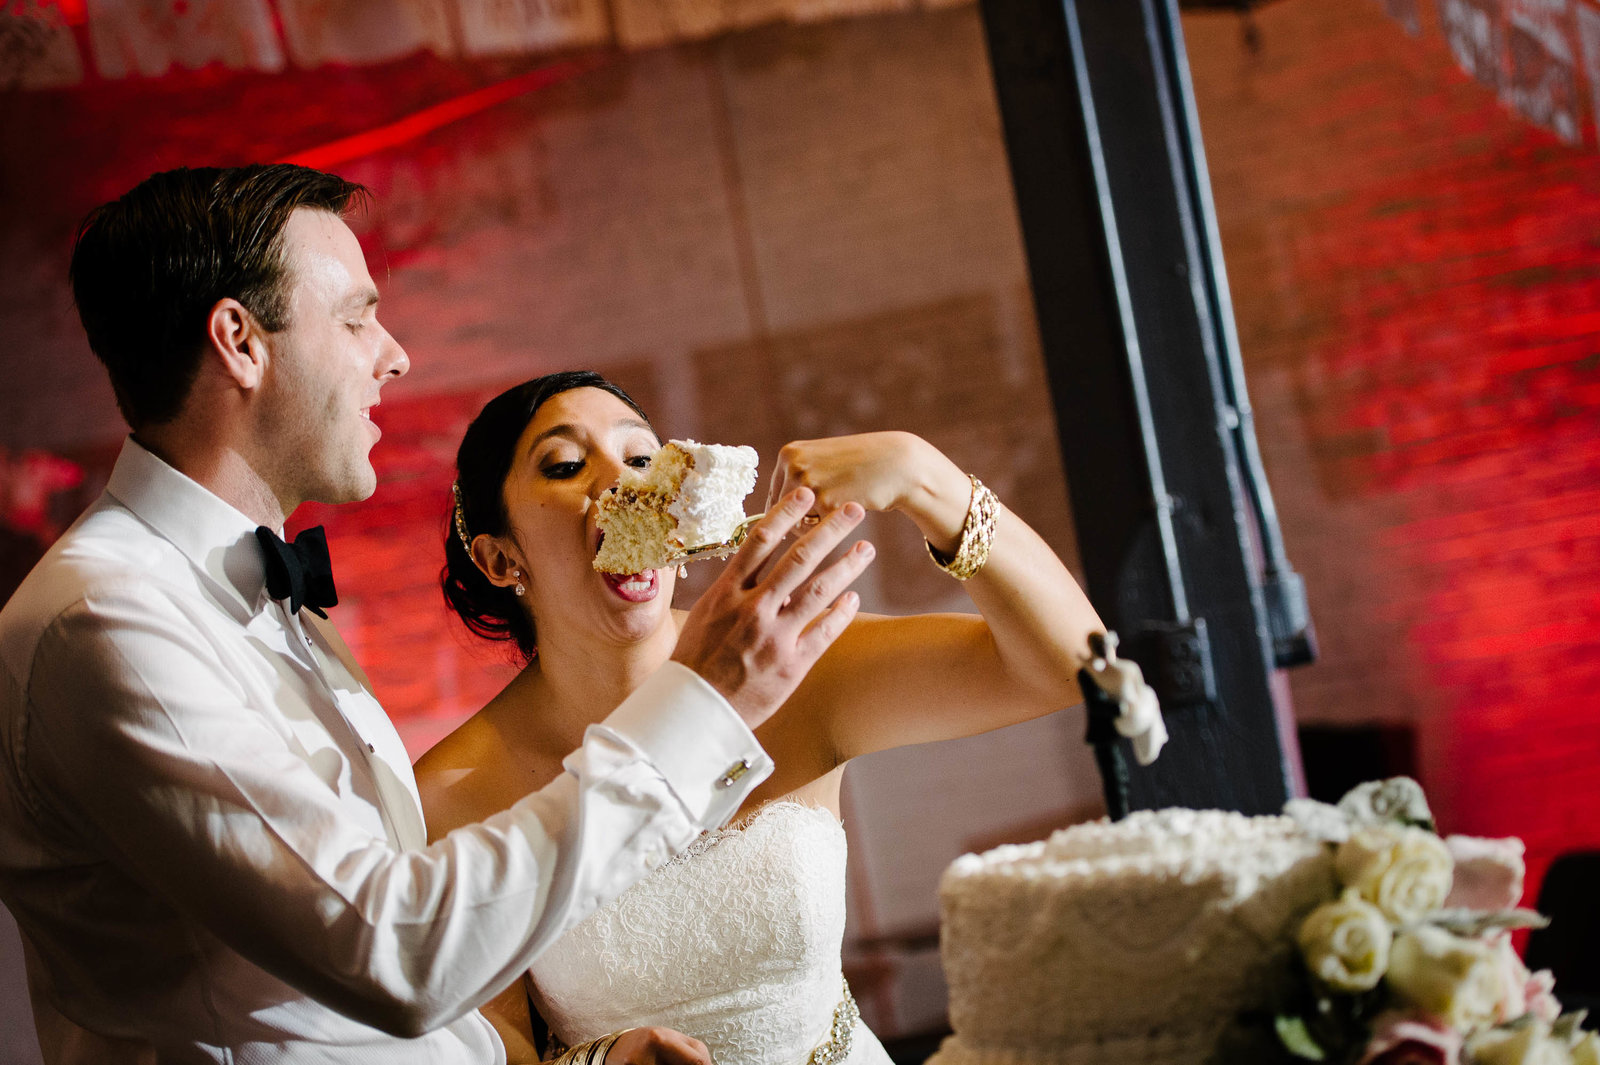 201-El-paso-wedding-photographer-PrAn _0972